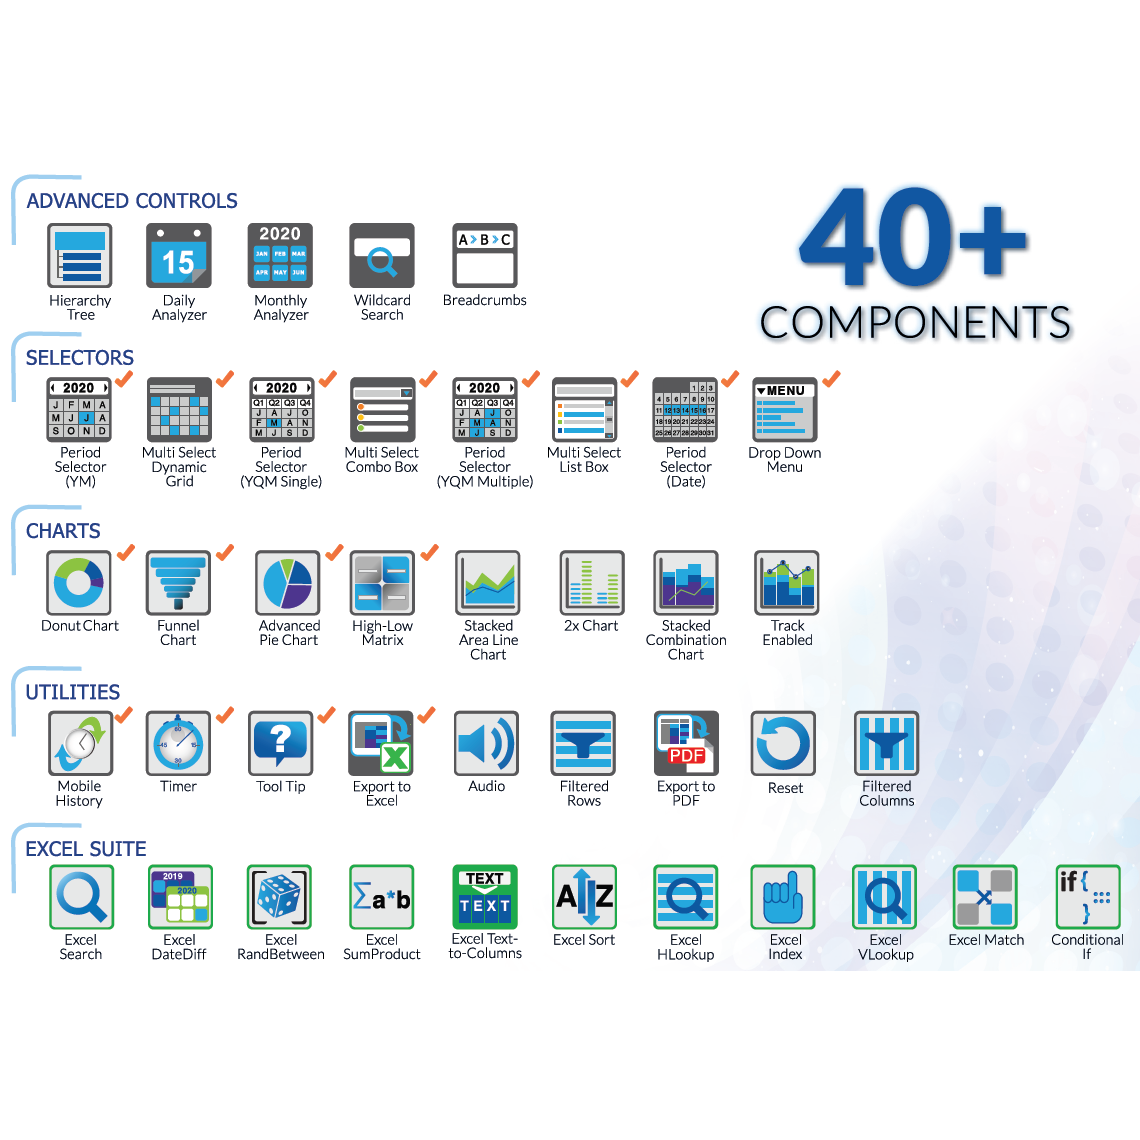 Shows the icons of all 40+ components in the Visual BI Bundle